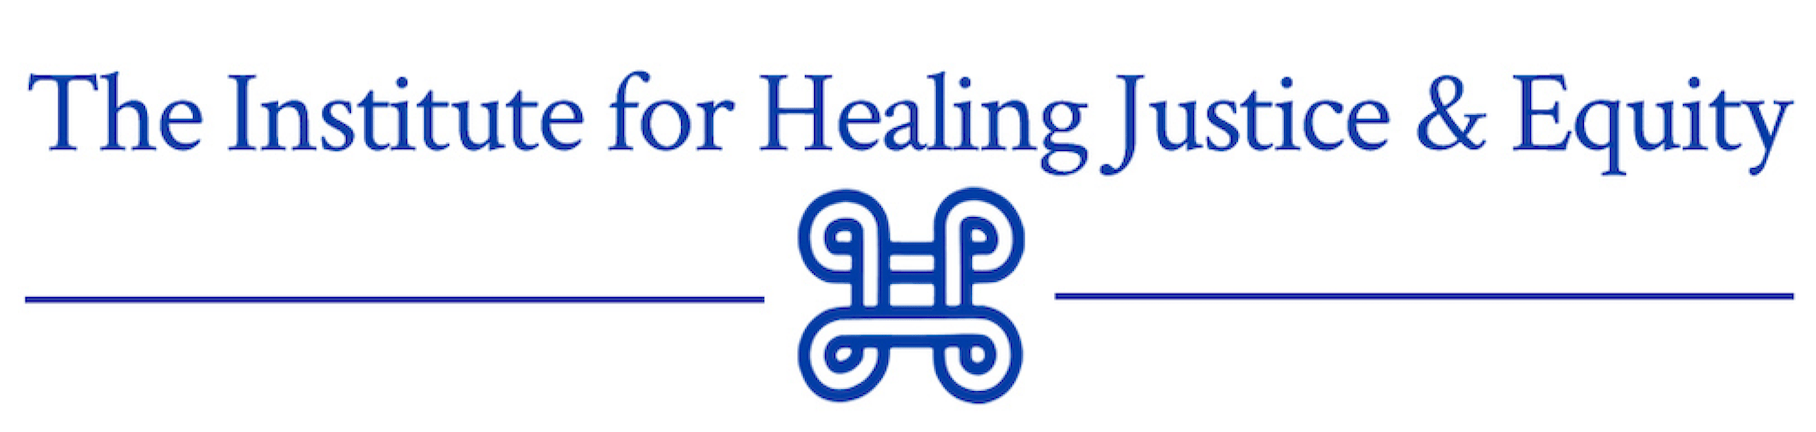 The Institute for Healing Justice and Equity